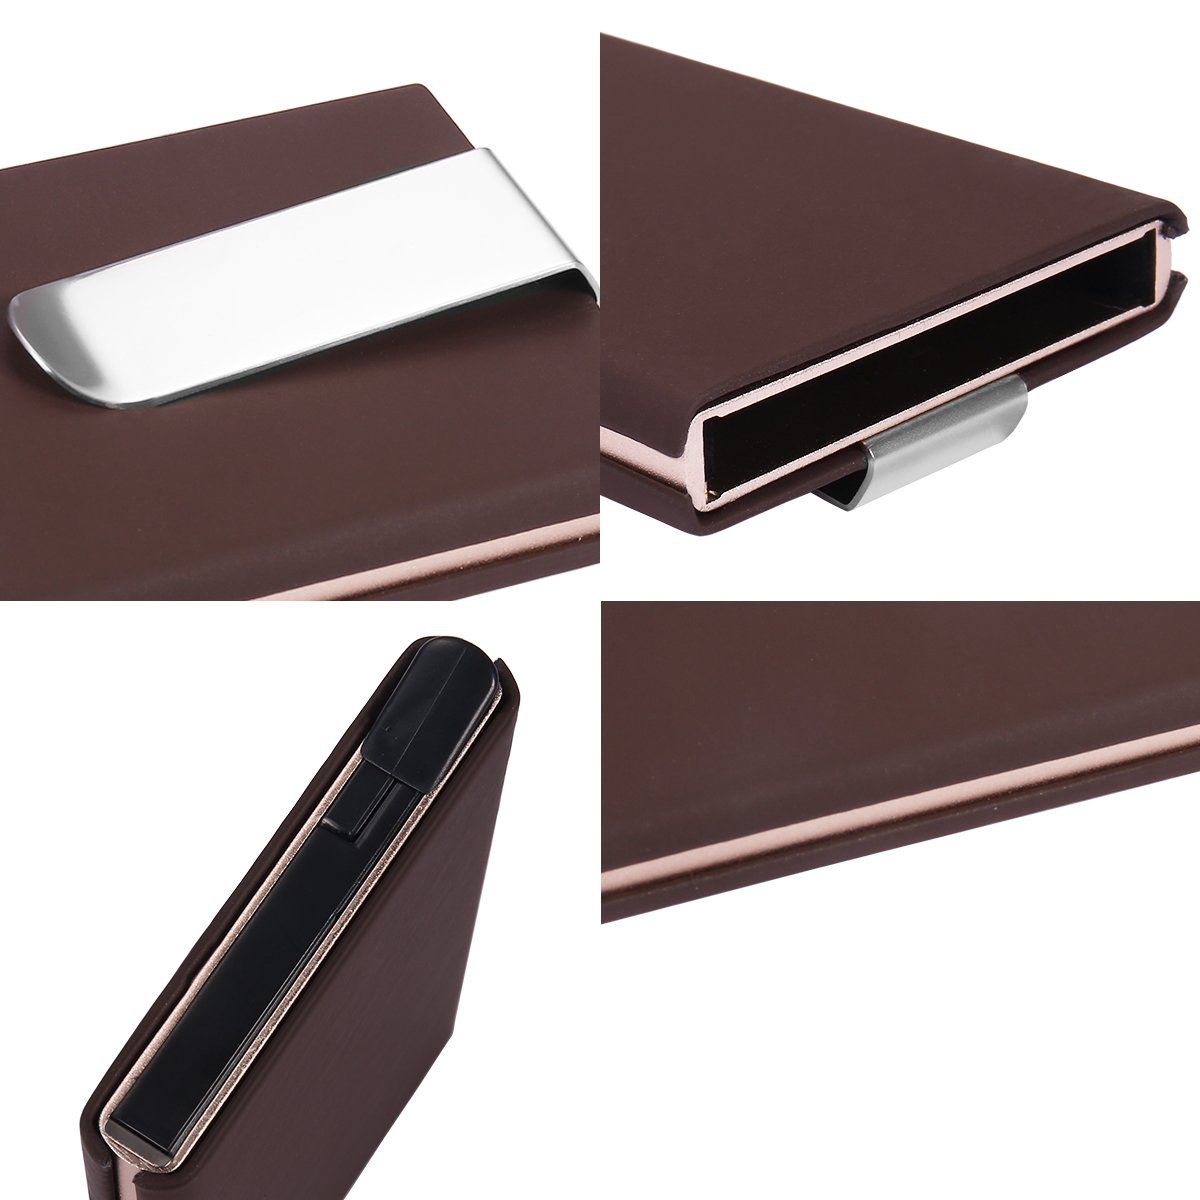 Amazon.com: Men Metal Aluminum Slim Cash Credit Card Holder Wallet Anti-RFID Anti-NFC Money Clip (Brown): Clothing